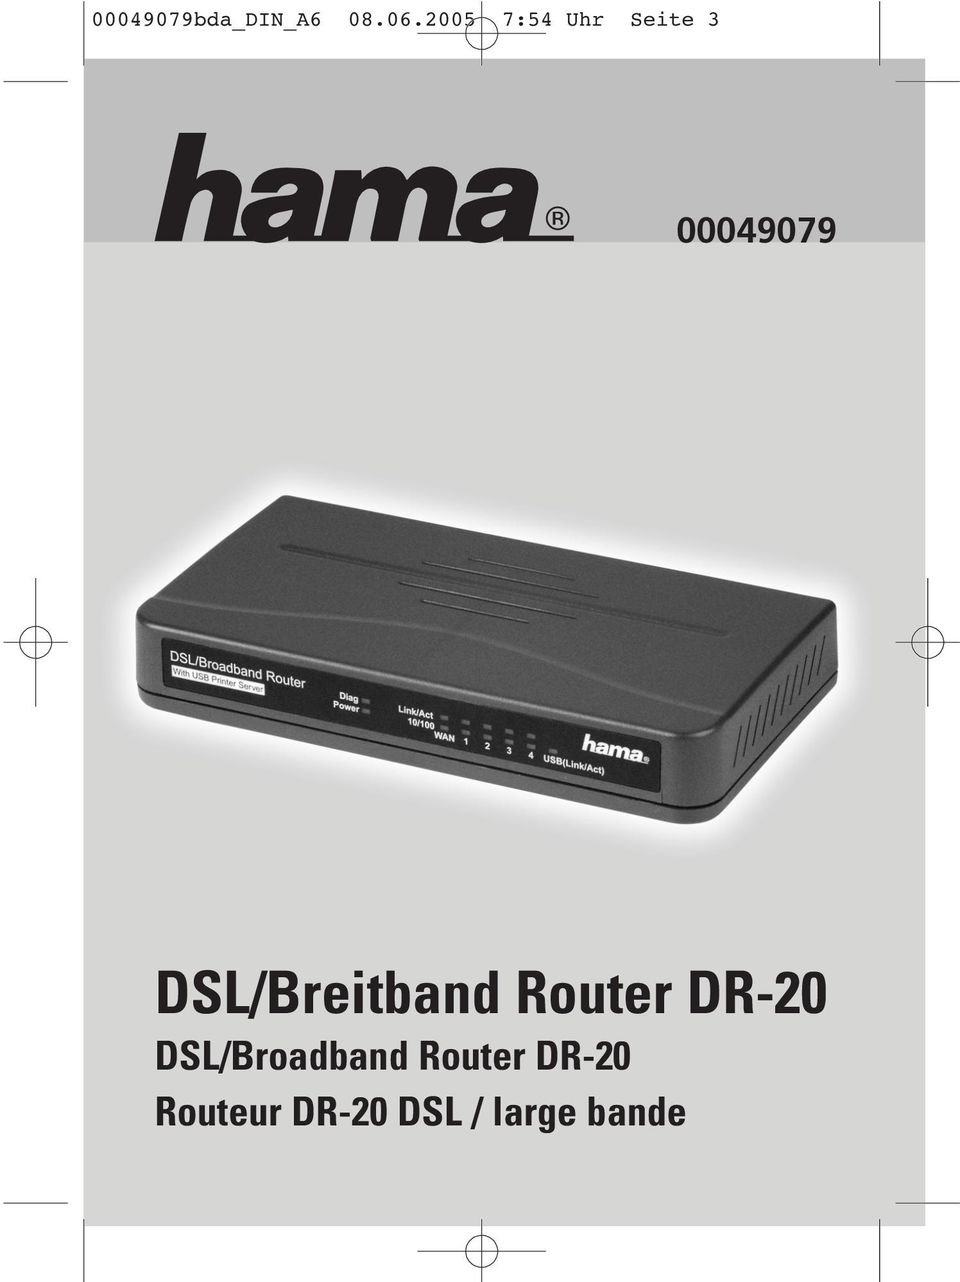 DSL/Breitband Router DR-20